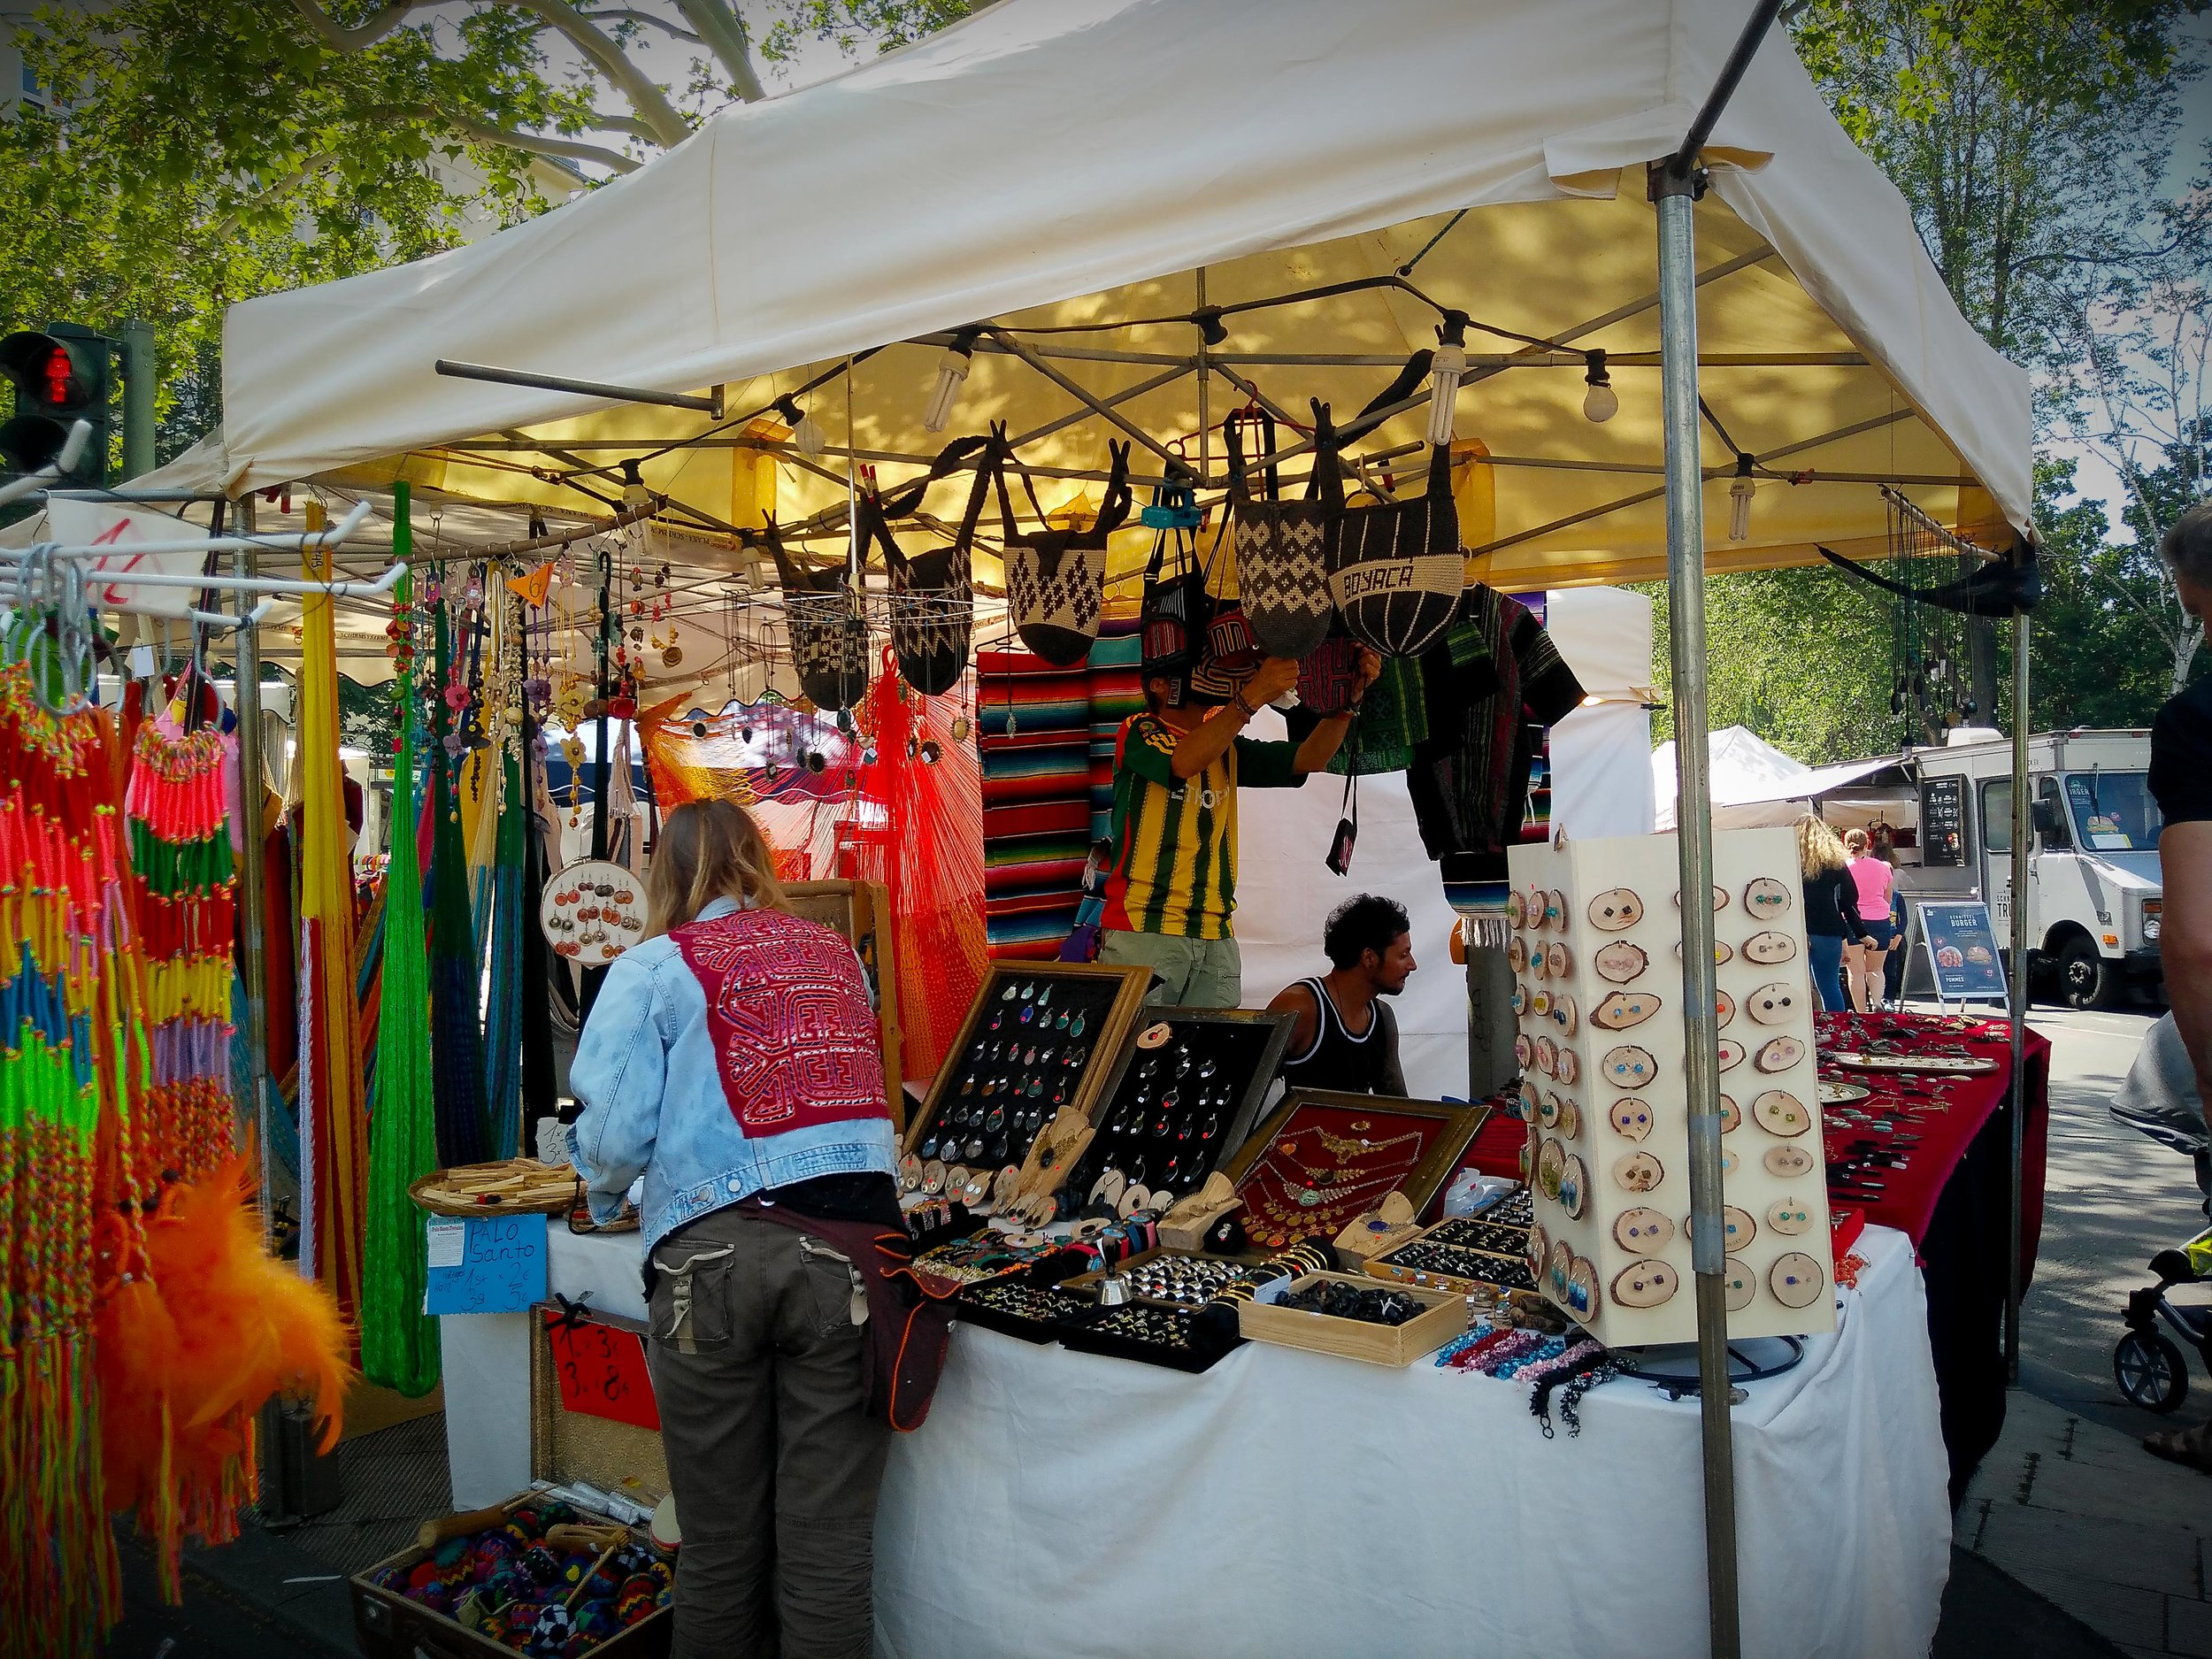 Carnival of Cultures, Berlin, Germany 2019. Vendor selling hand braided bracelets, trinkets, necklaces, and other accessories. The jean sweater has a mola textile attached on the back.